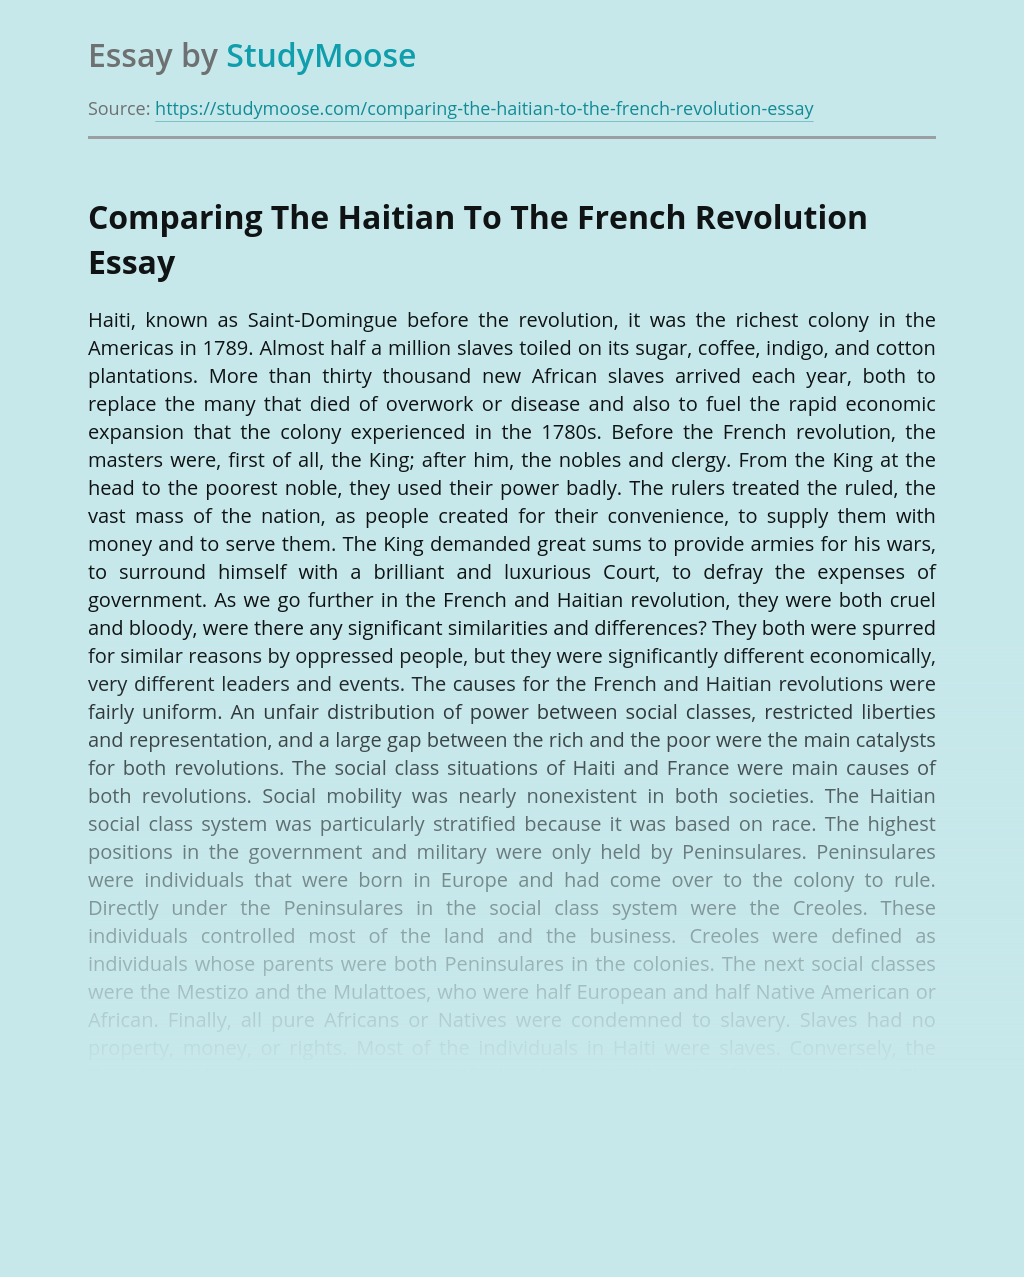 Comparing The Haitian To The French Revolution